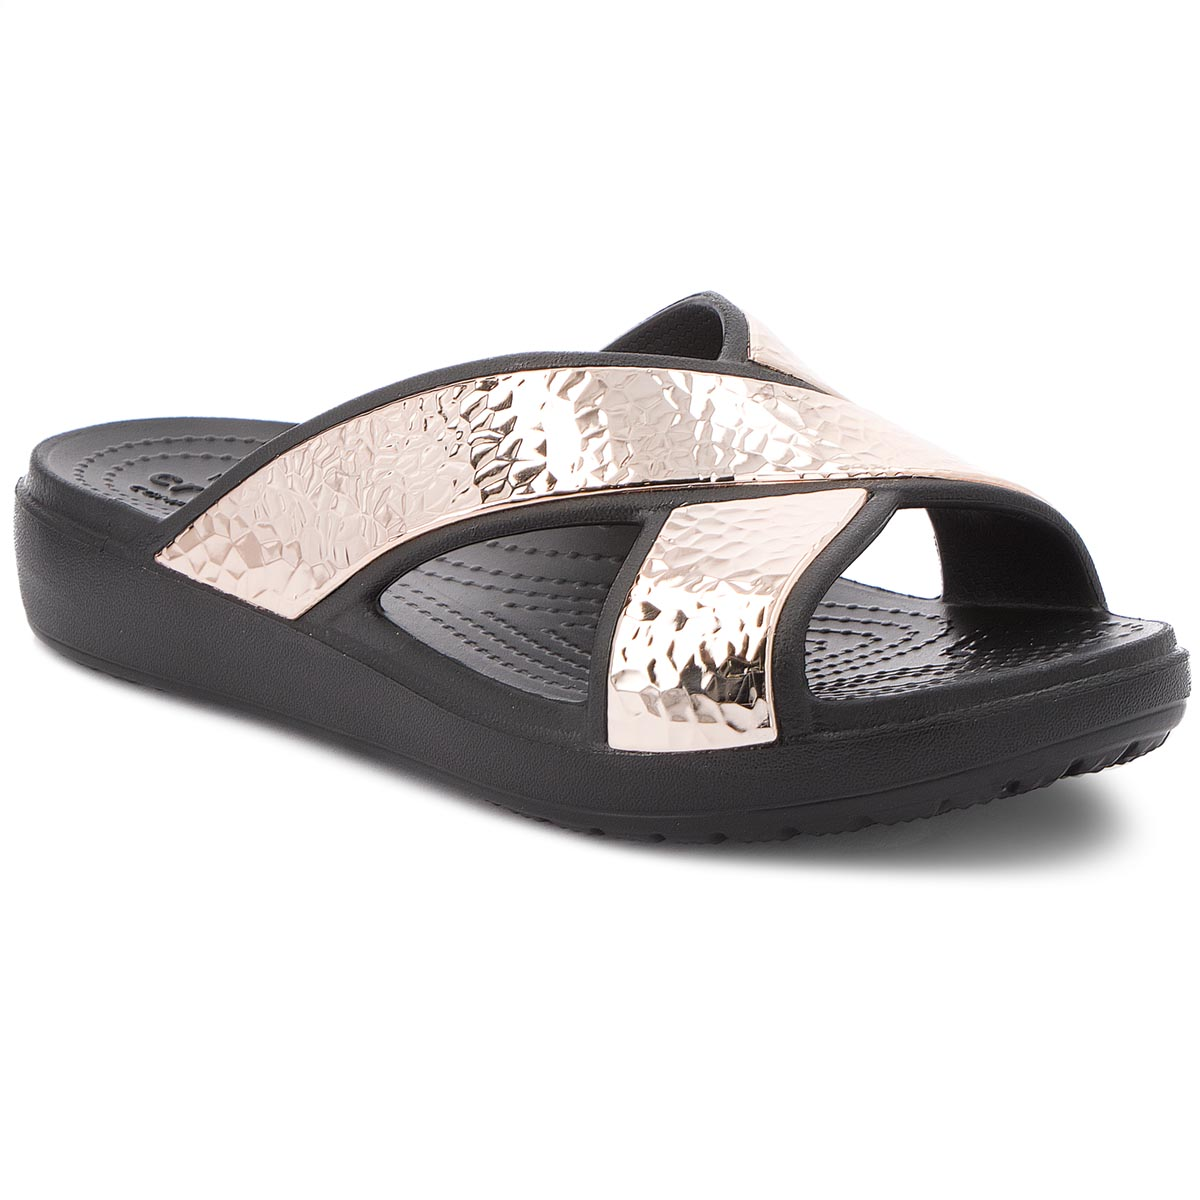 Klapki CROCS - Sloane Hammered Xstrp Slide W 205136 Black/Rose Gold